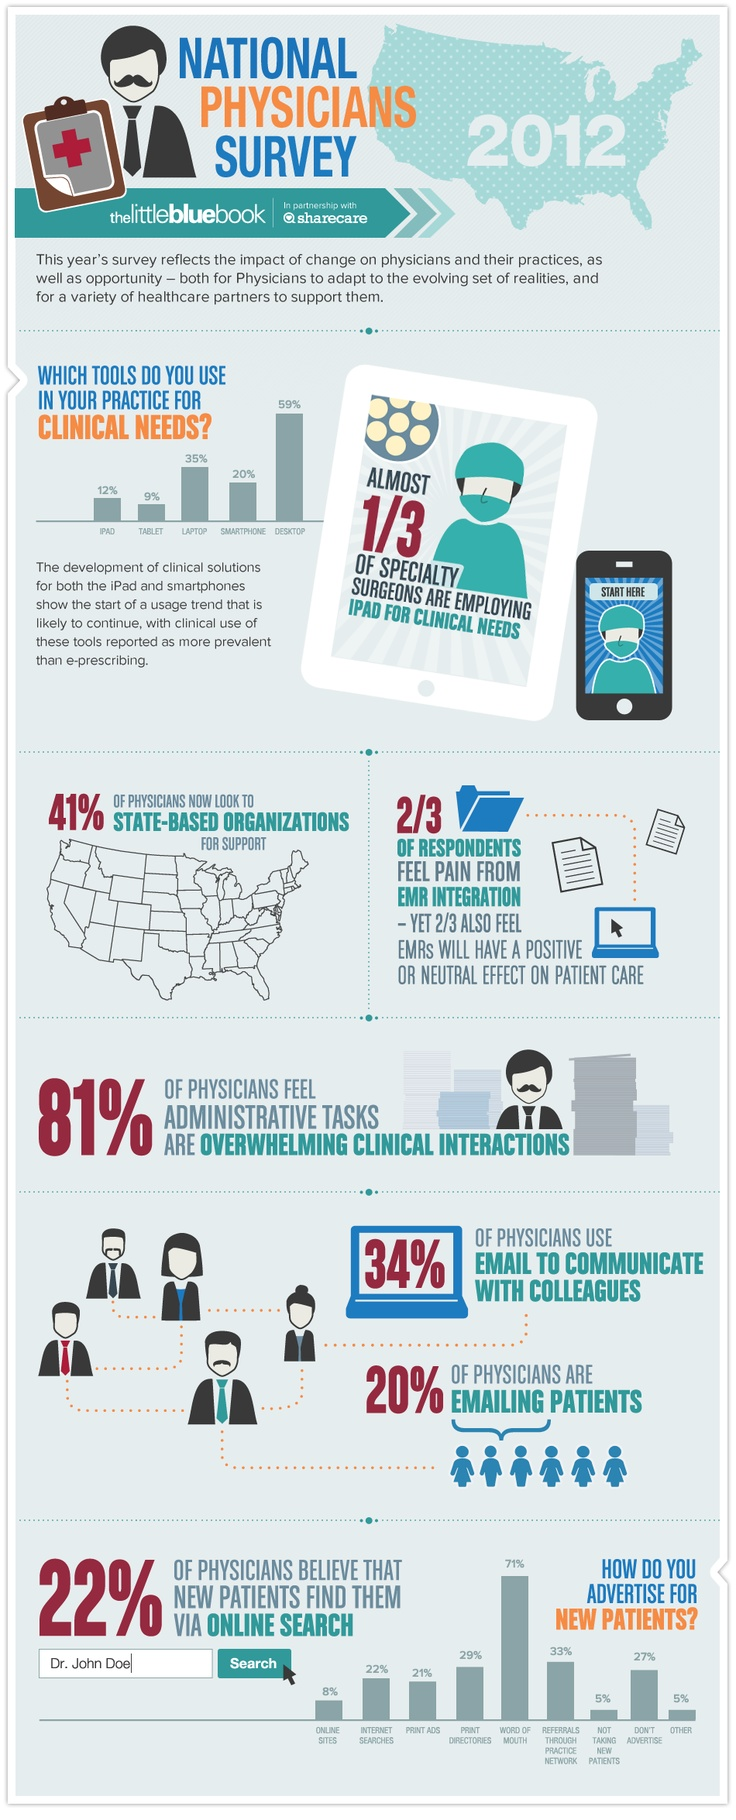 National Physicians Survey 2012 #INFOGRAPHIC